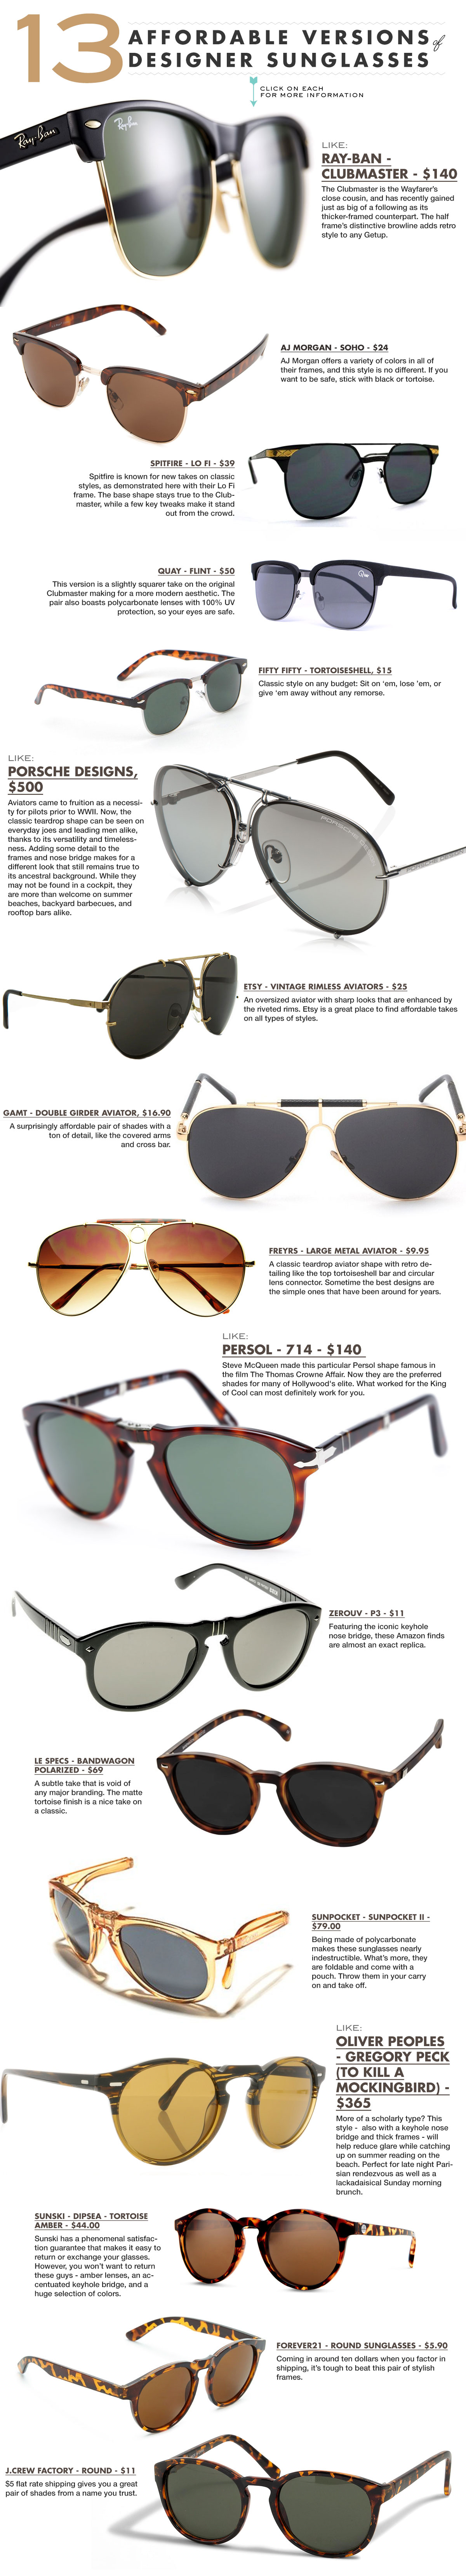 affordable versions of designer sunglasses